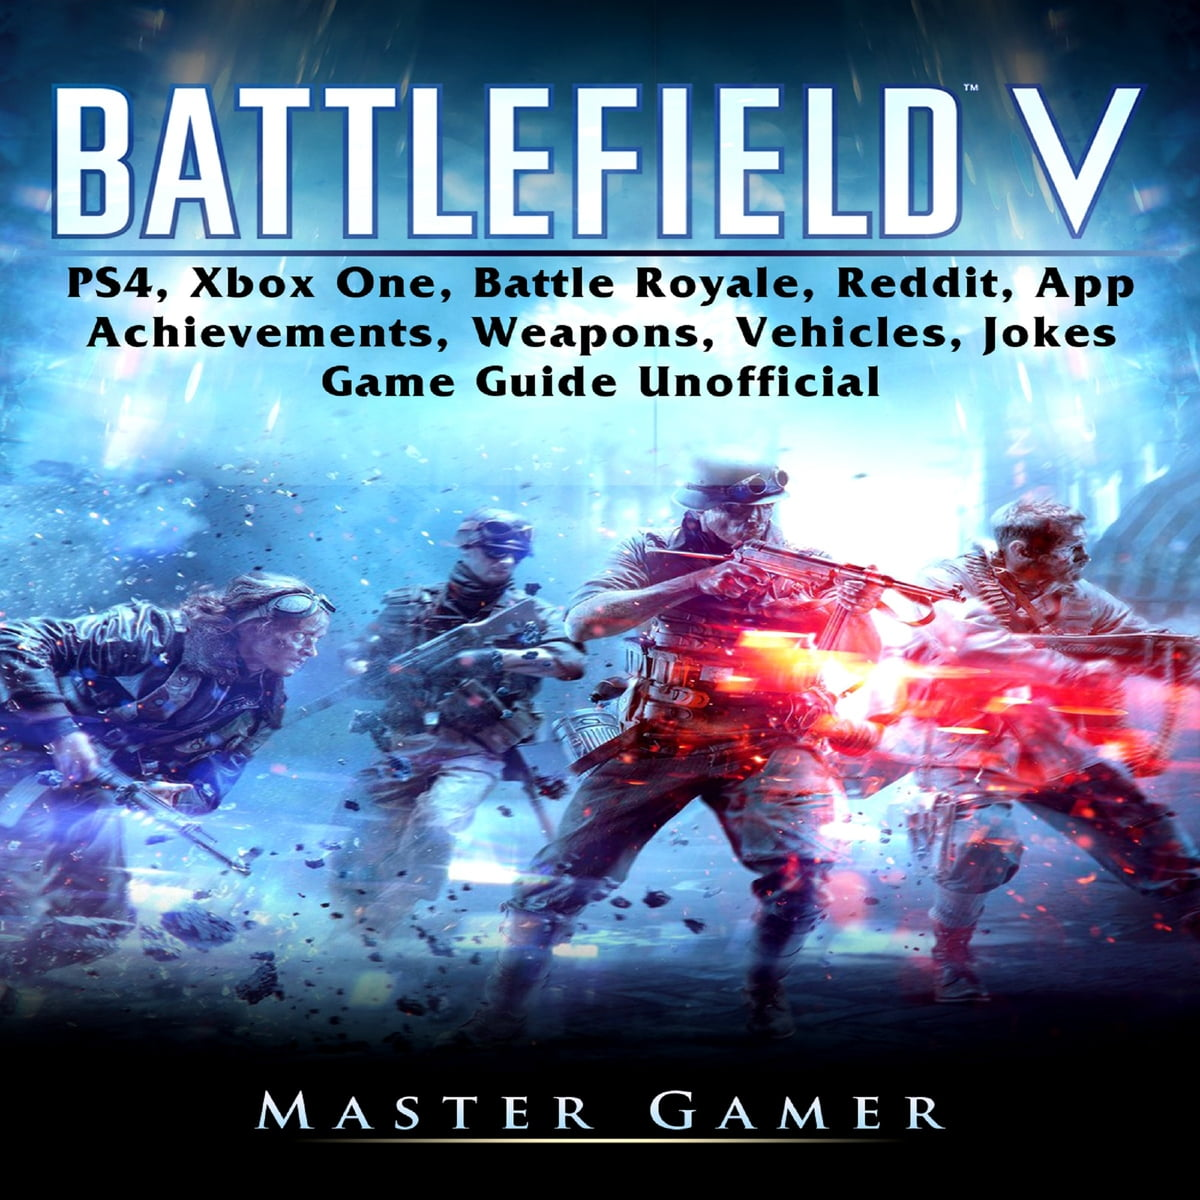 Battlefield V Ps4 Xbox One Battle Royale Reddit App Achievements Weapons Vehicles Jokes Game Guide Unofficial Audiobook By Master Gamer 9781094201368 Rakuten Kobo Ireland